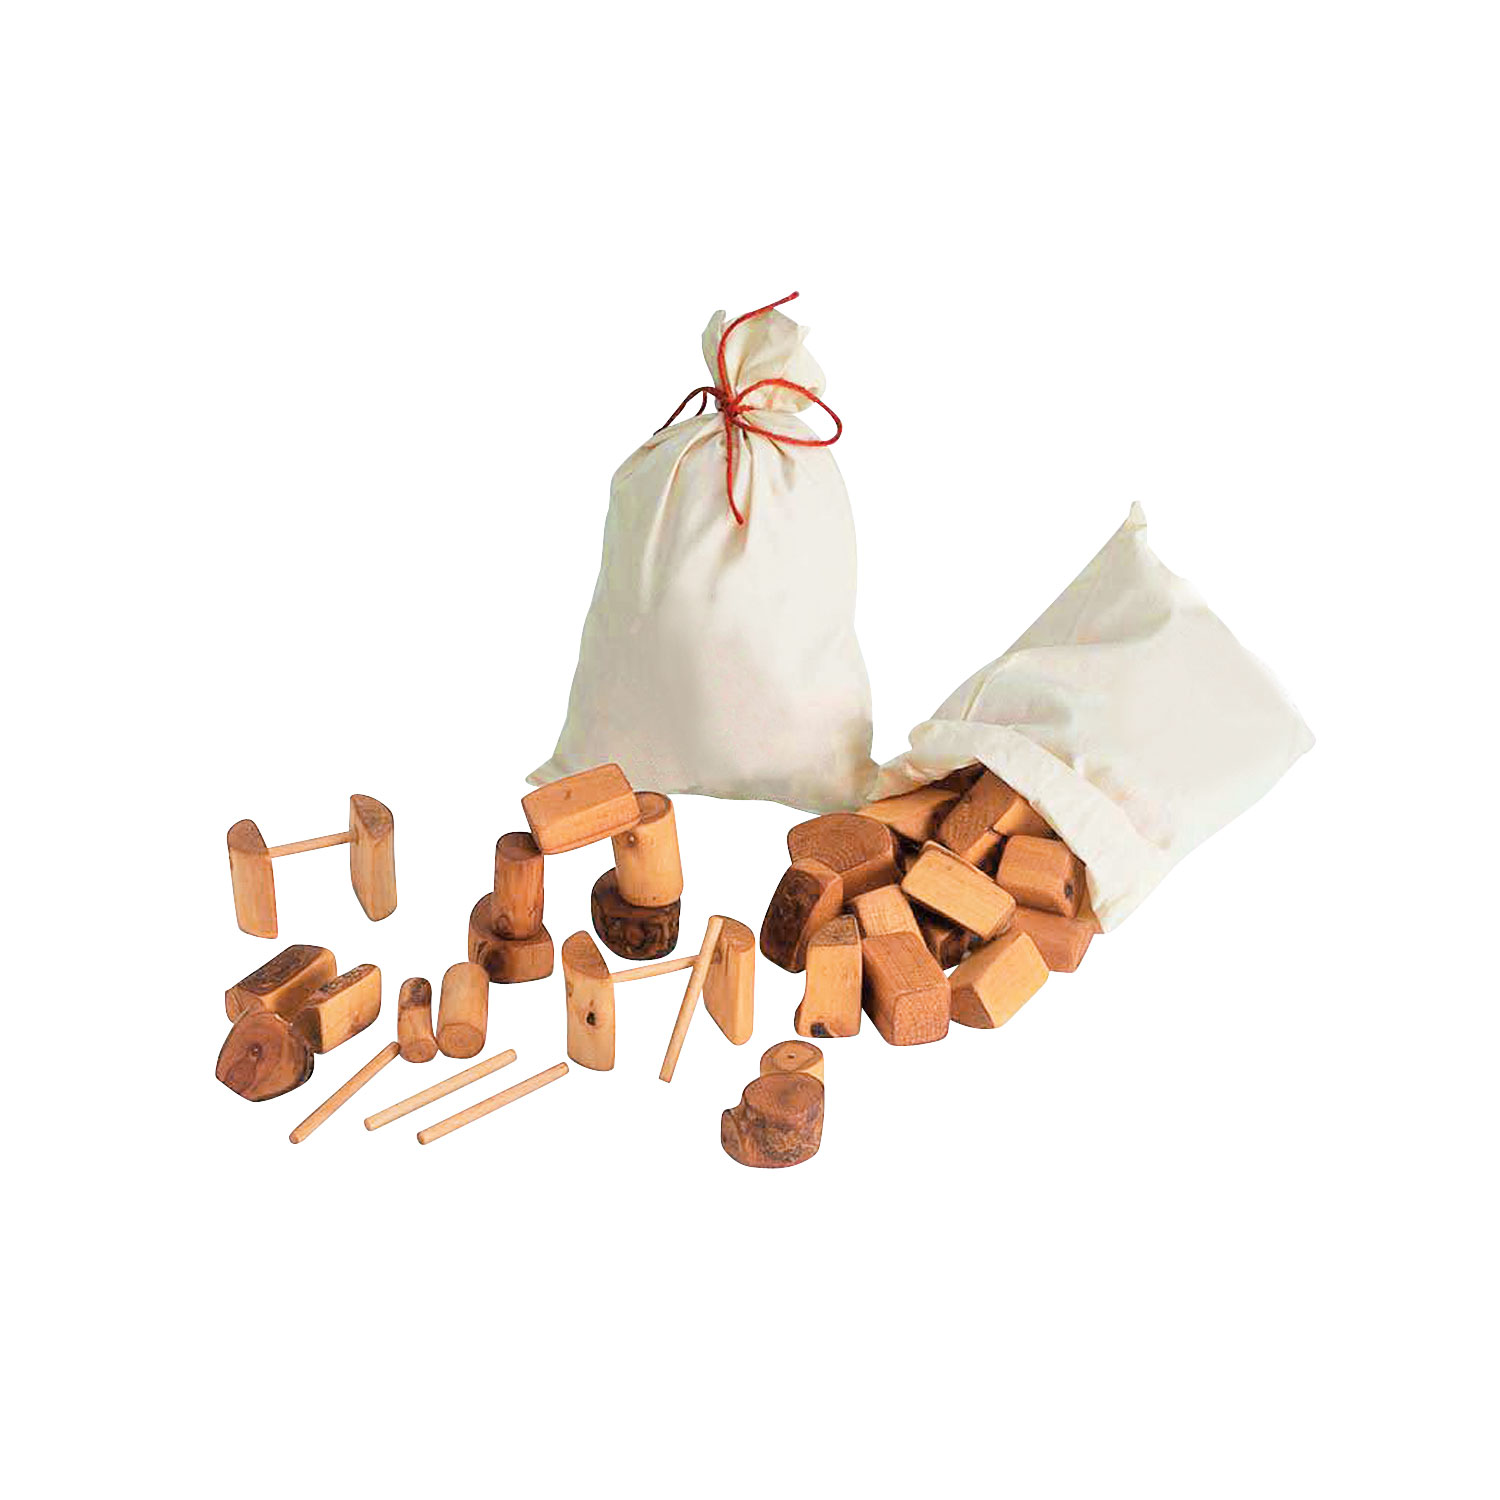 Wooden Building Blocks with Bark